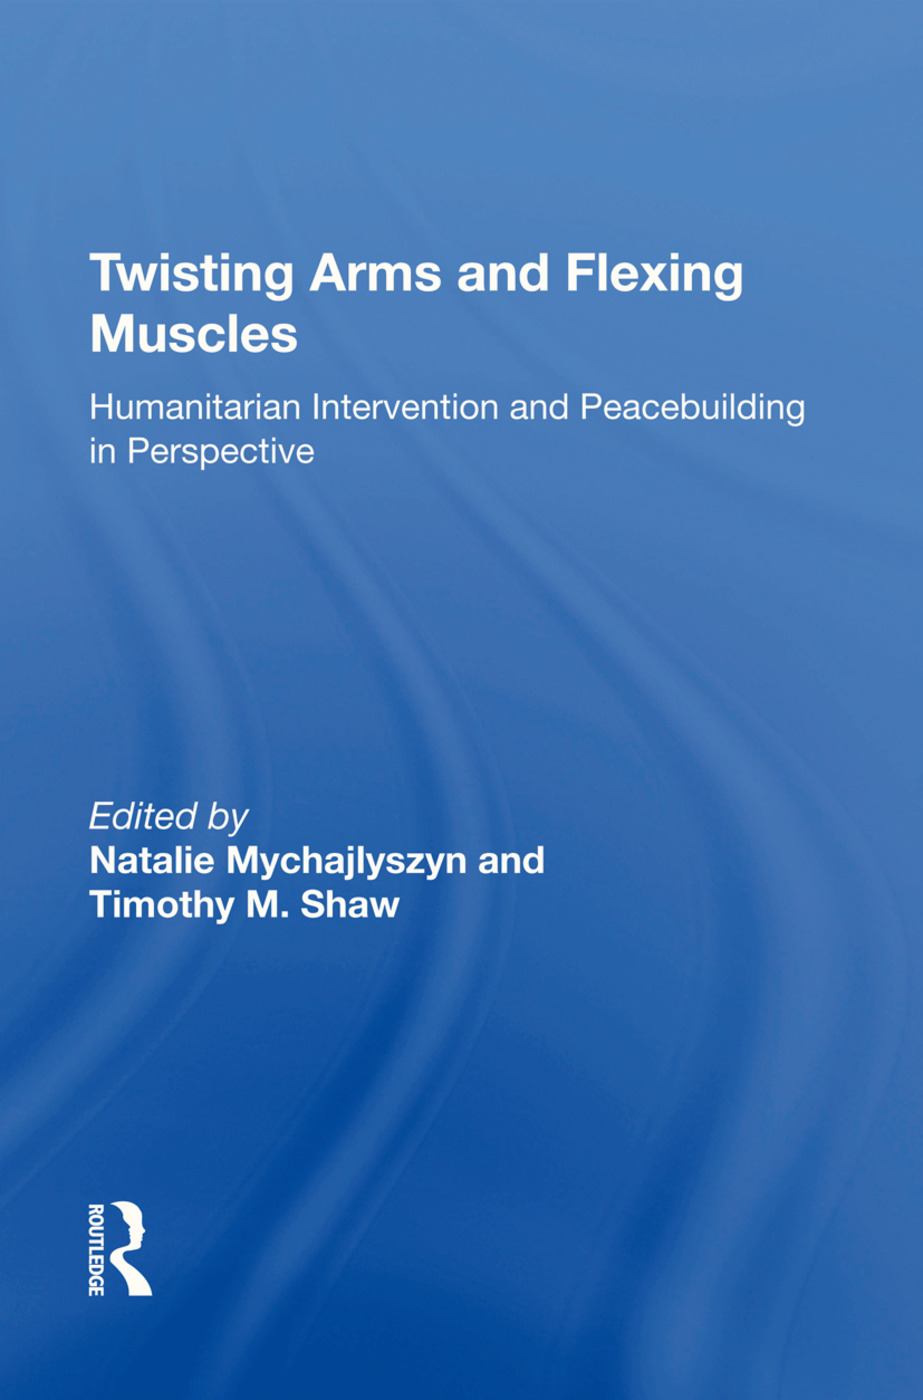 Twisting Arms and Flexing Muscles